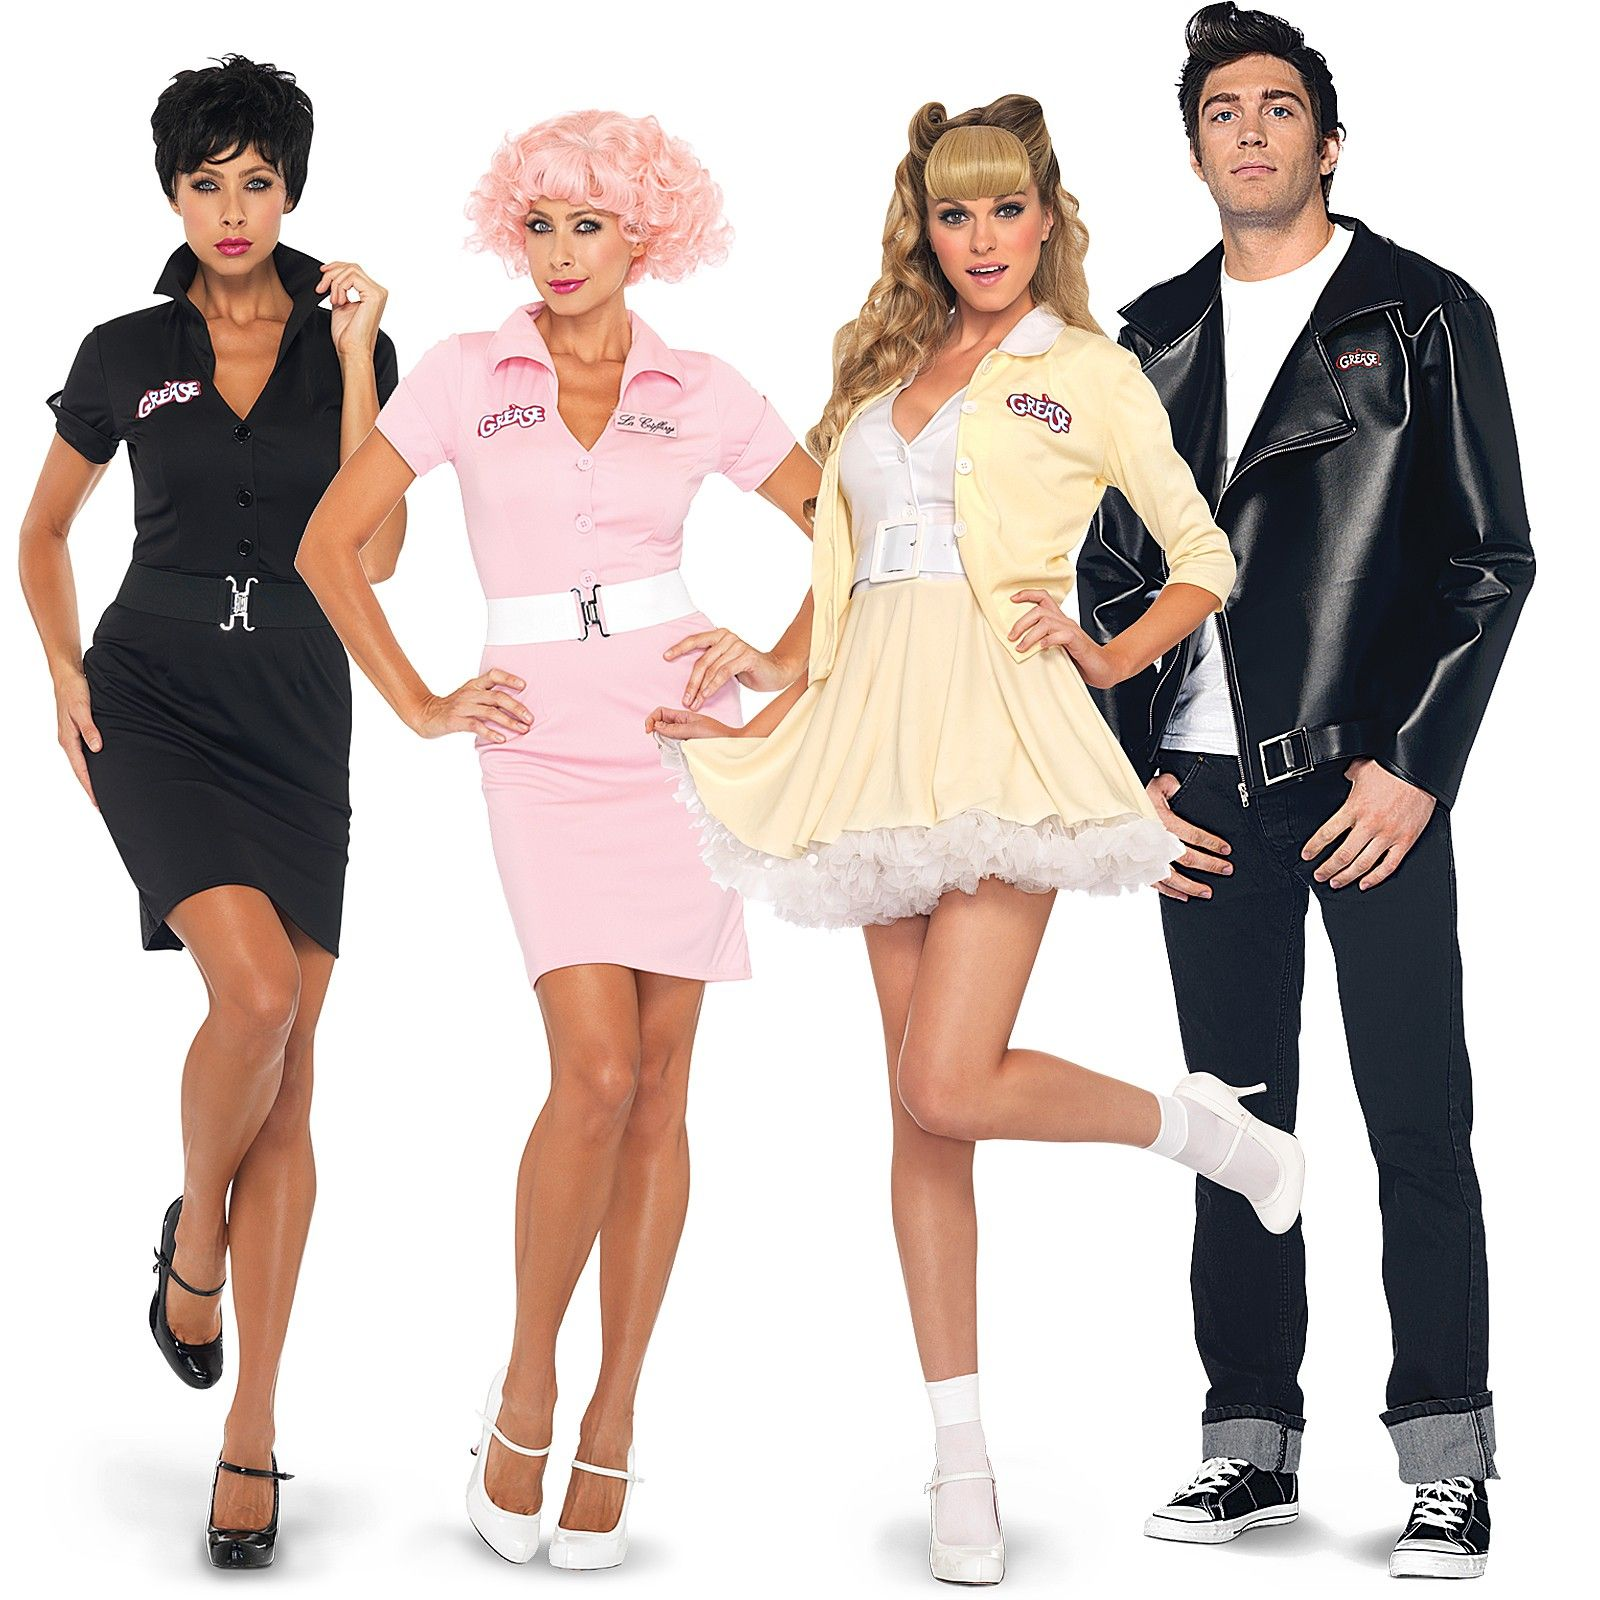 Greaser Men's Adult Costume Kit | Grease couple costumes and Costumes